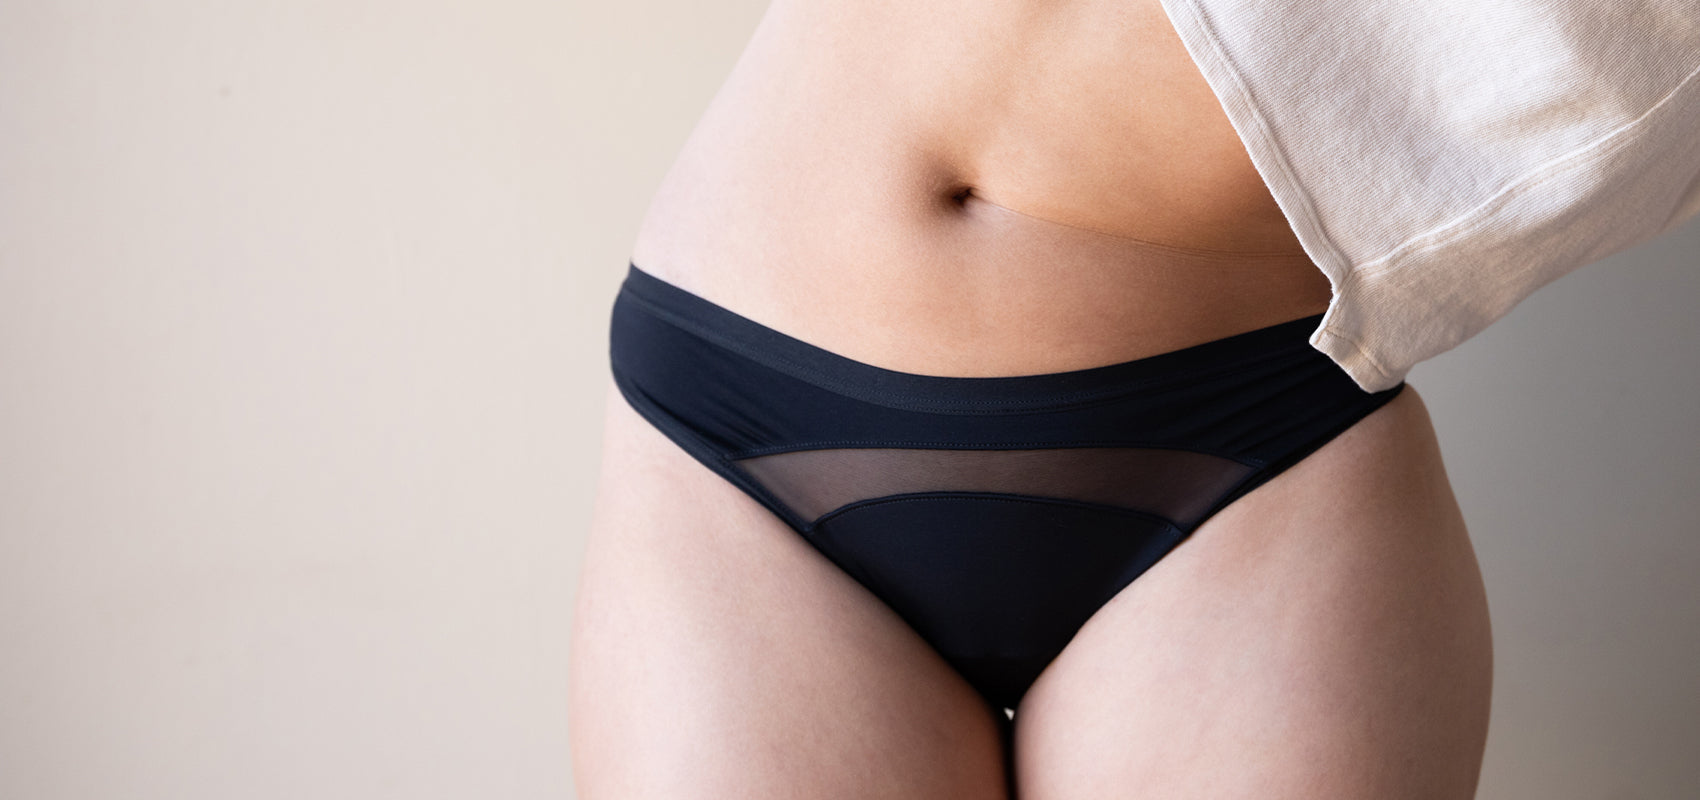 Woman wearing black brief with mesh panel